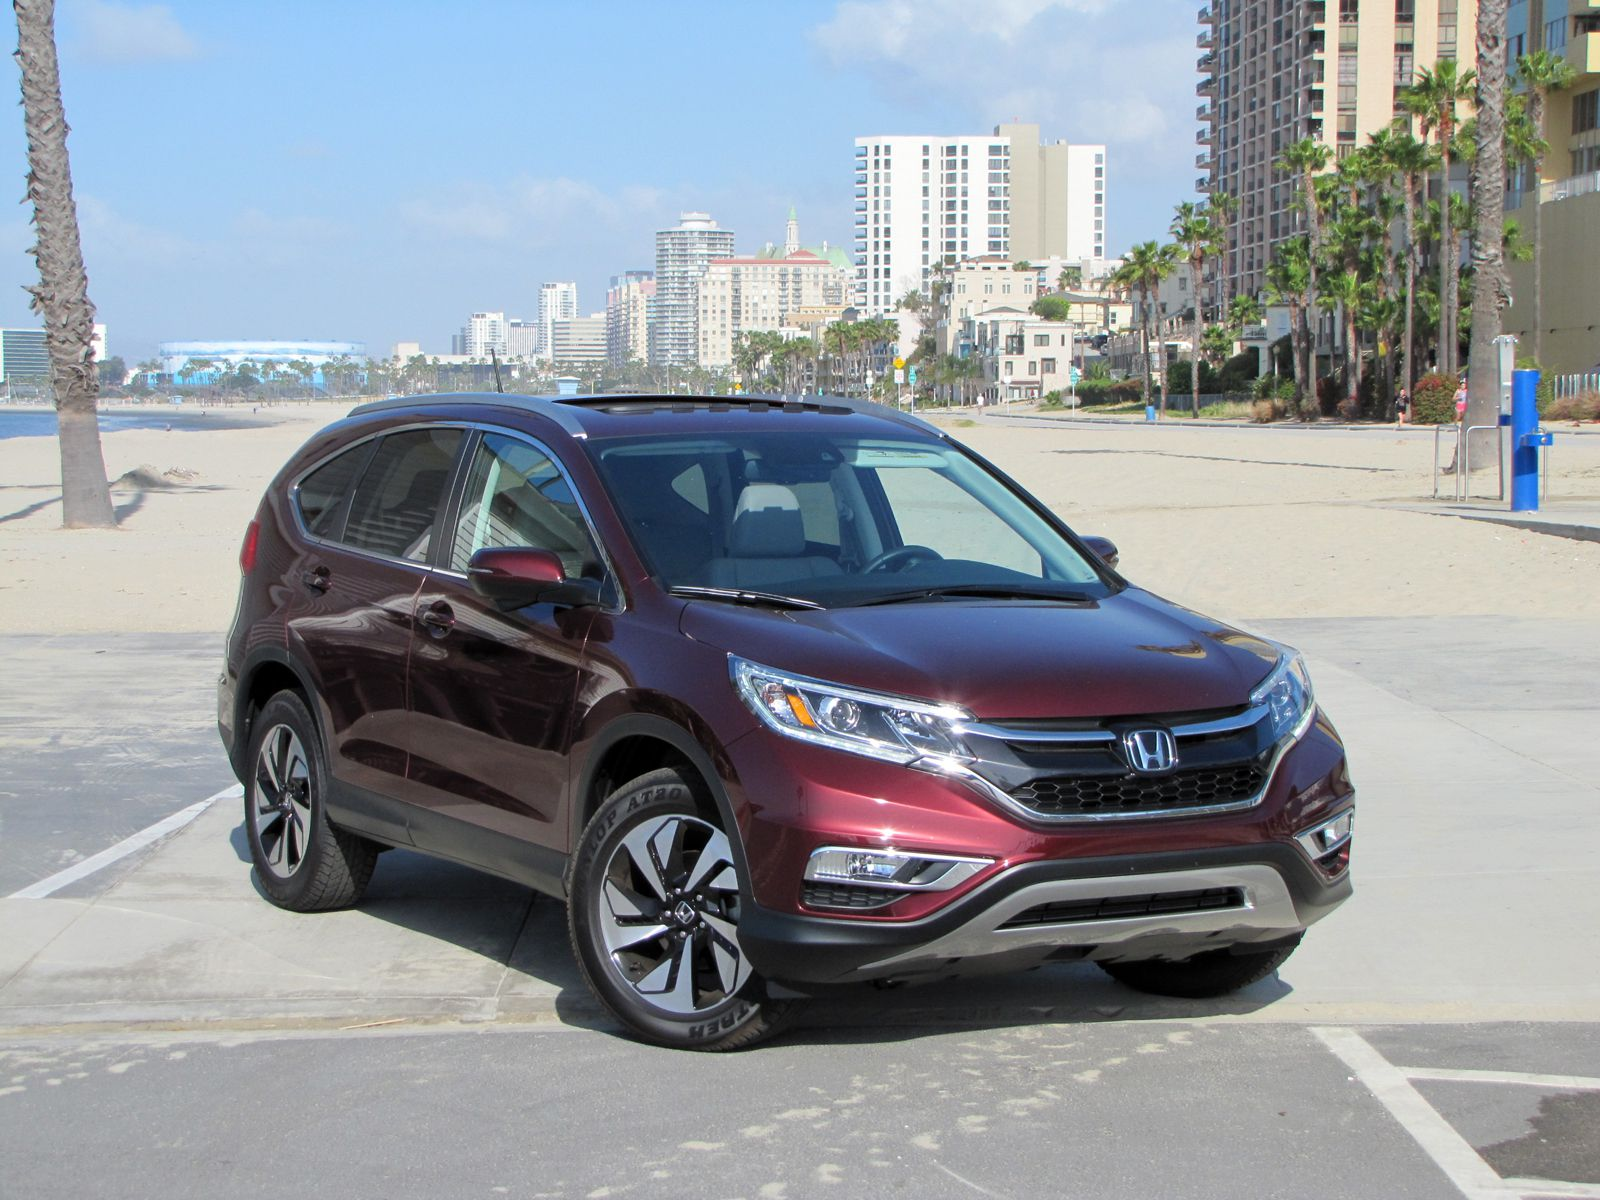 2016 Honda CR-V Road Test & Review